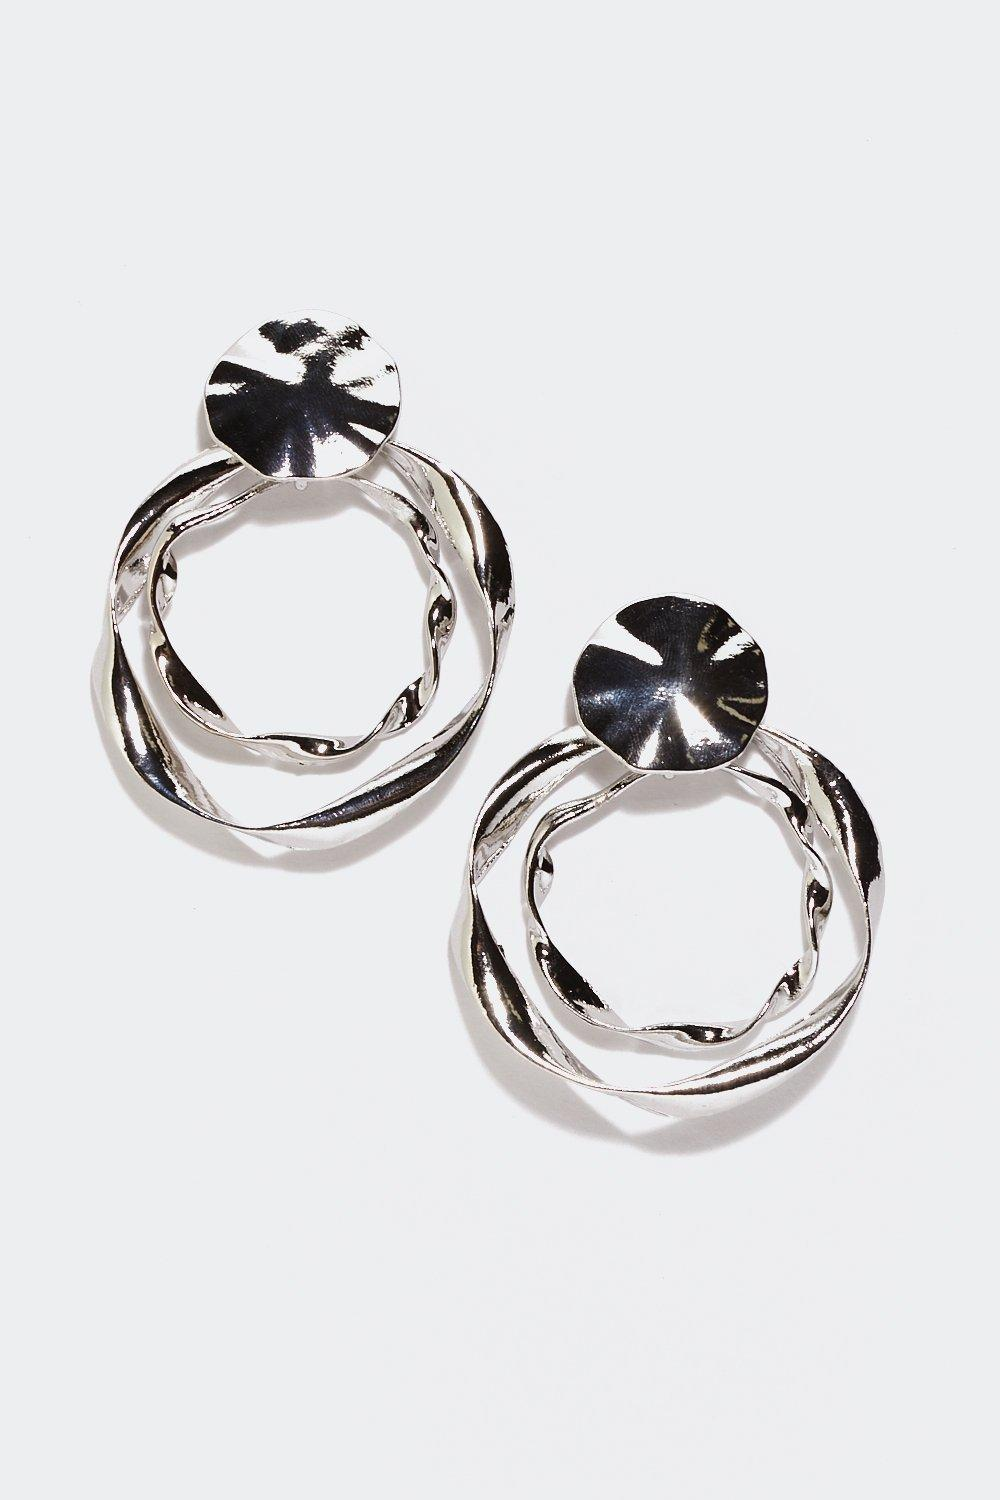 ef958ef76 Here's the Twist Circle Earrings | Shop Clothes at Nasty Gal!